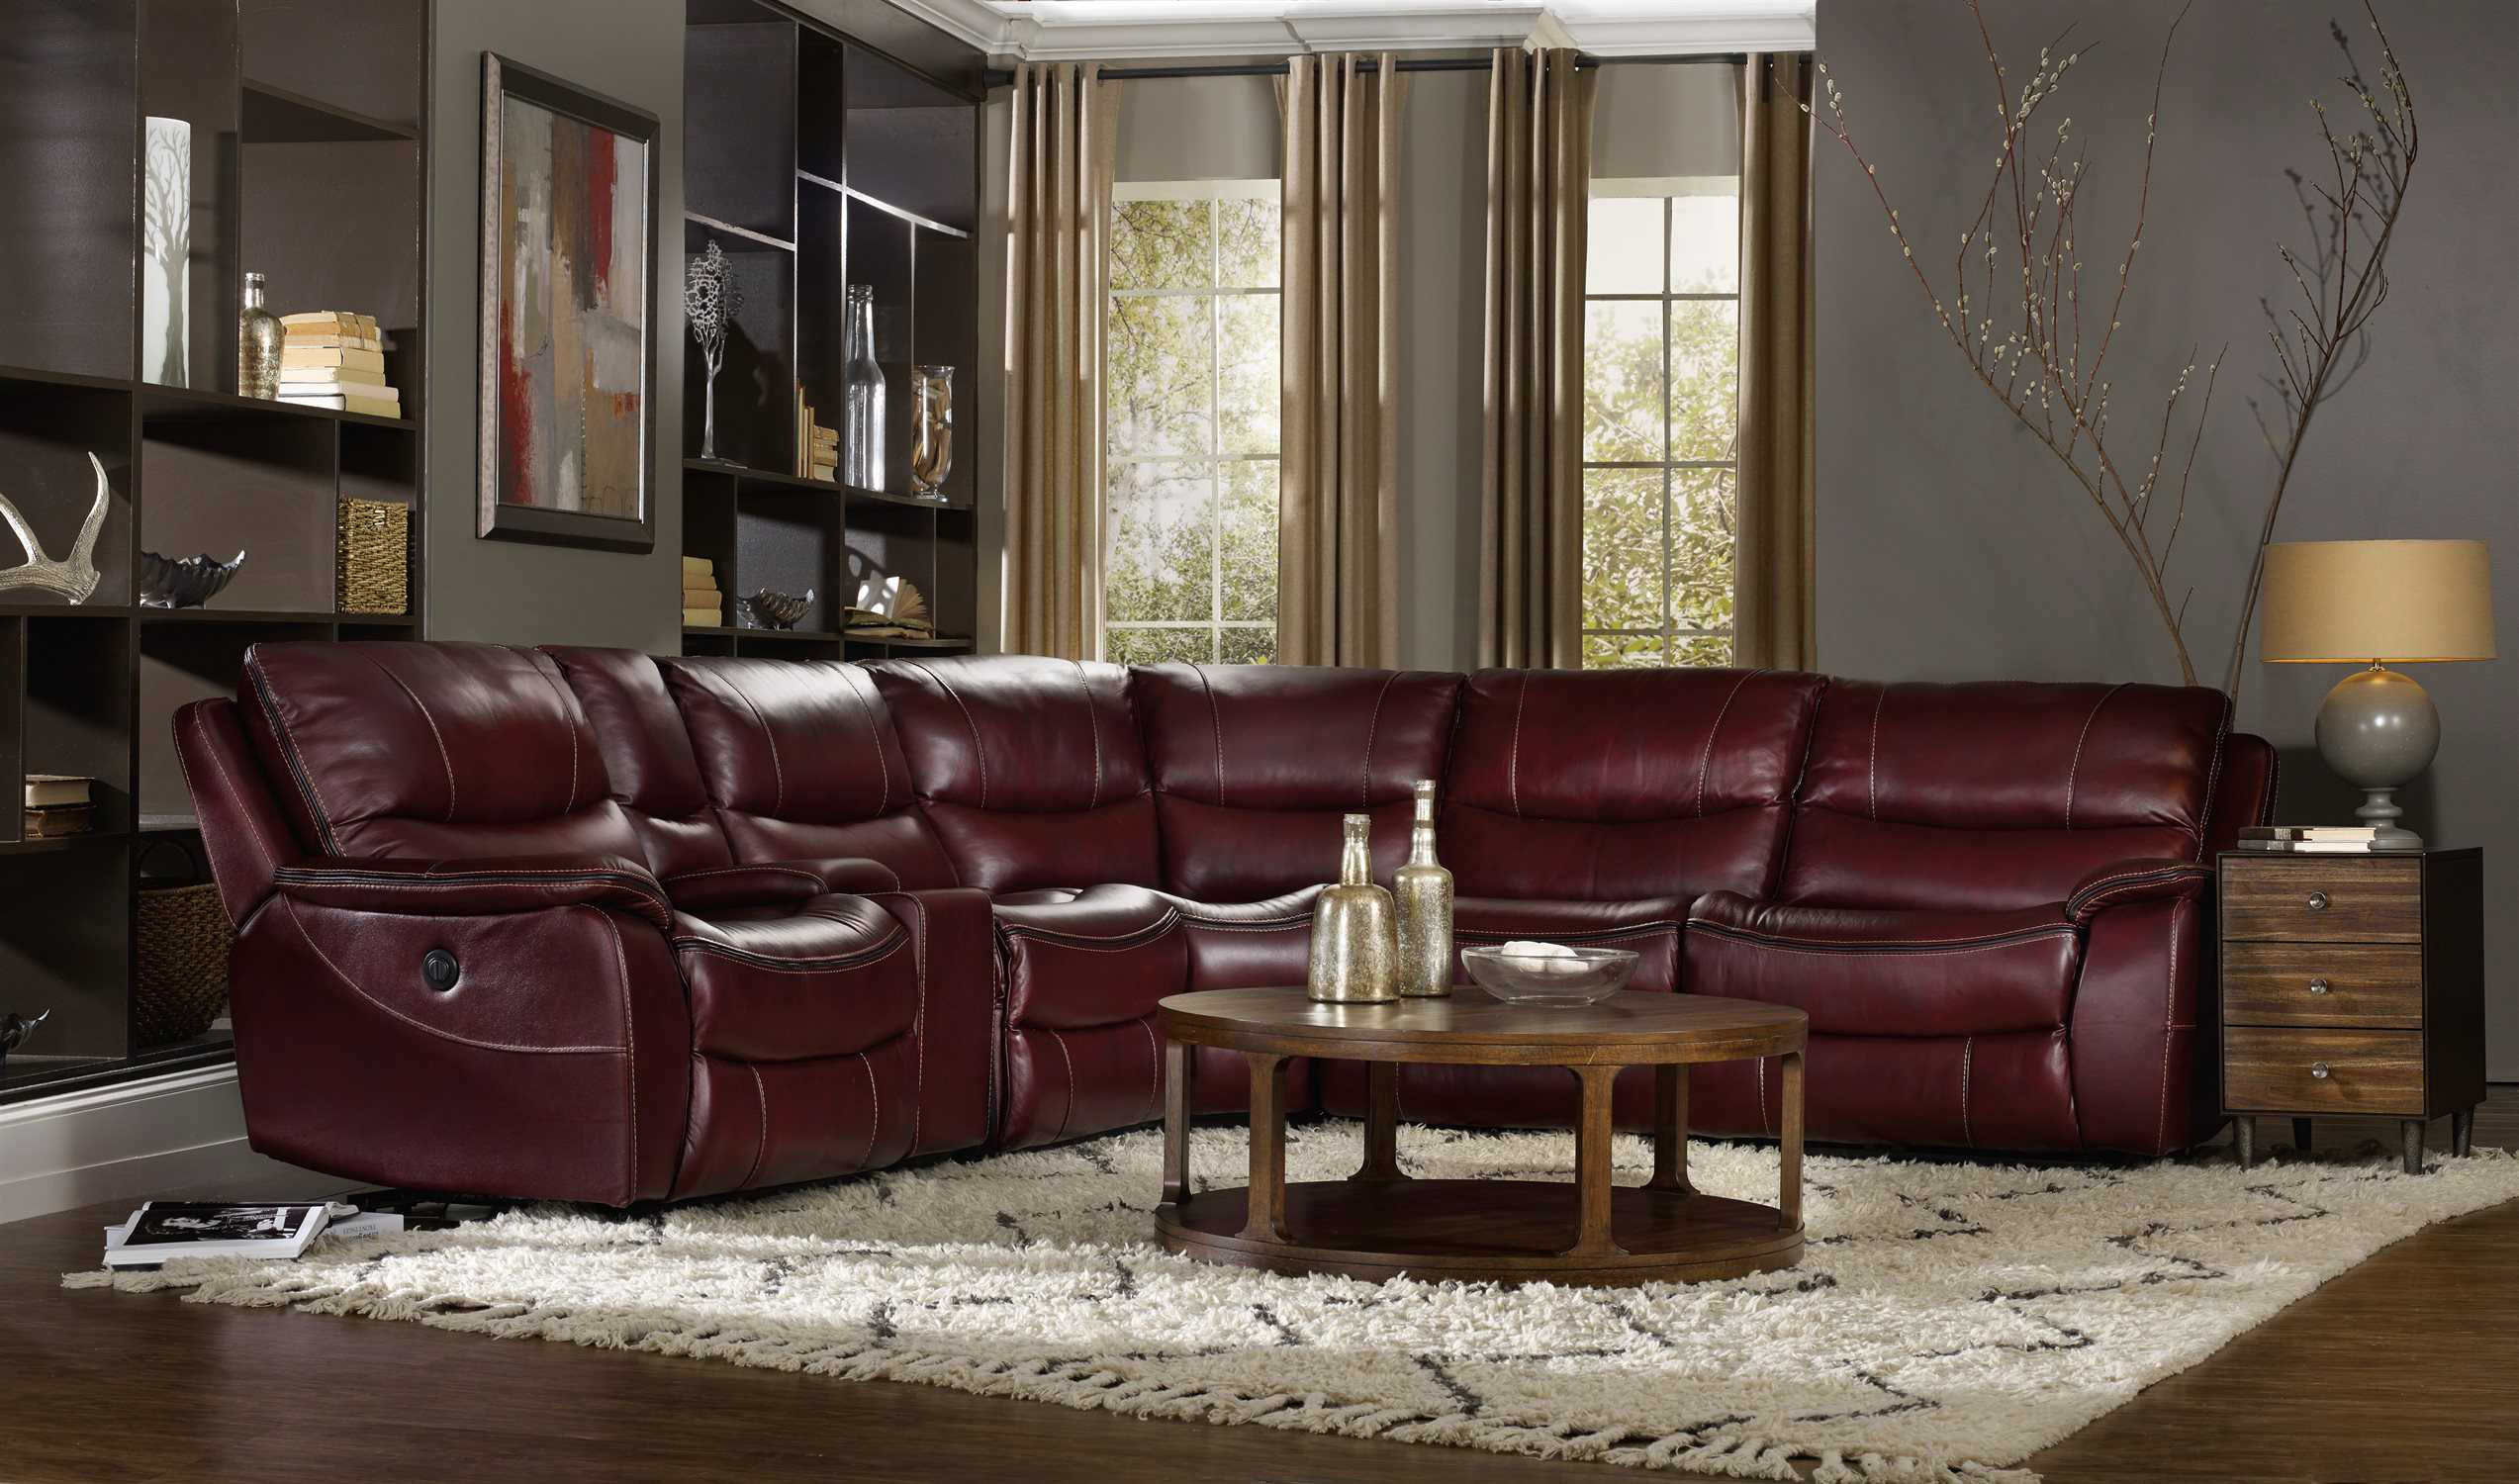 Hooker furniture red wine with black trim living room set for Black living room furniture sets